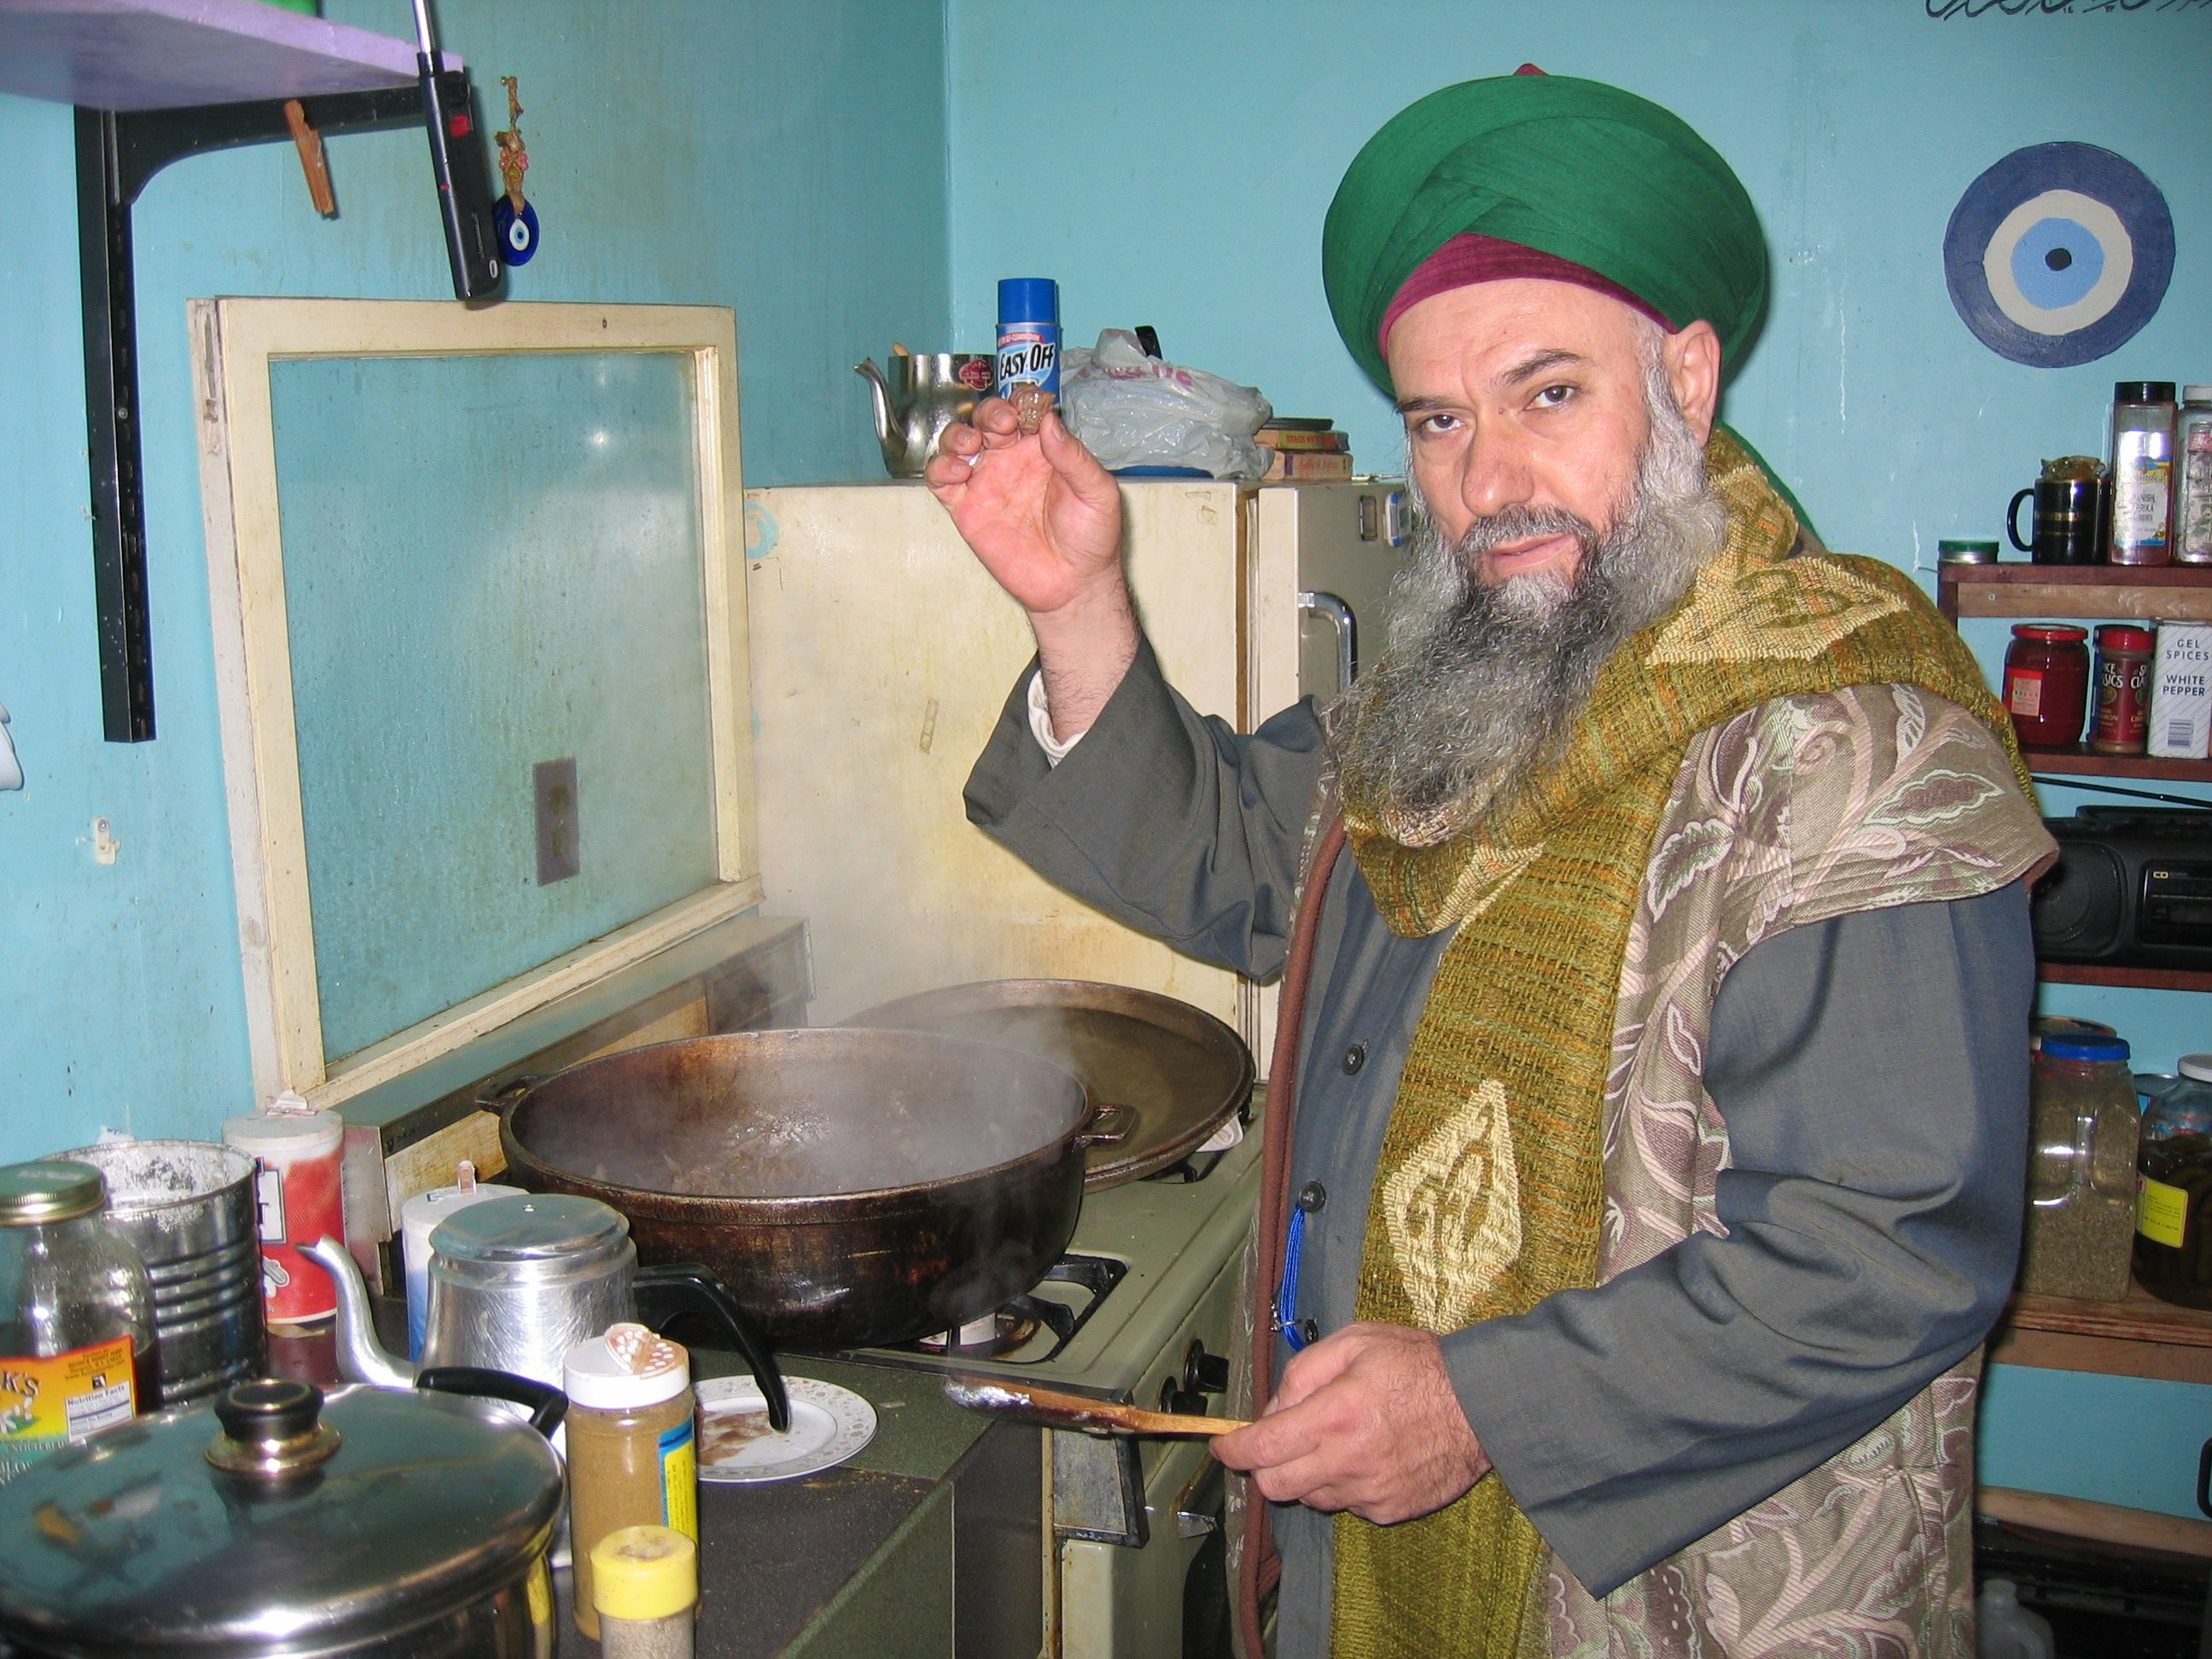 Cooking with Sheykh Effendi